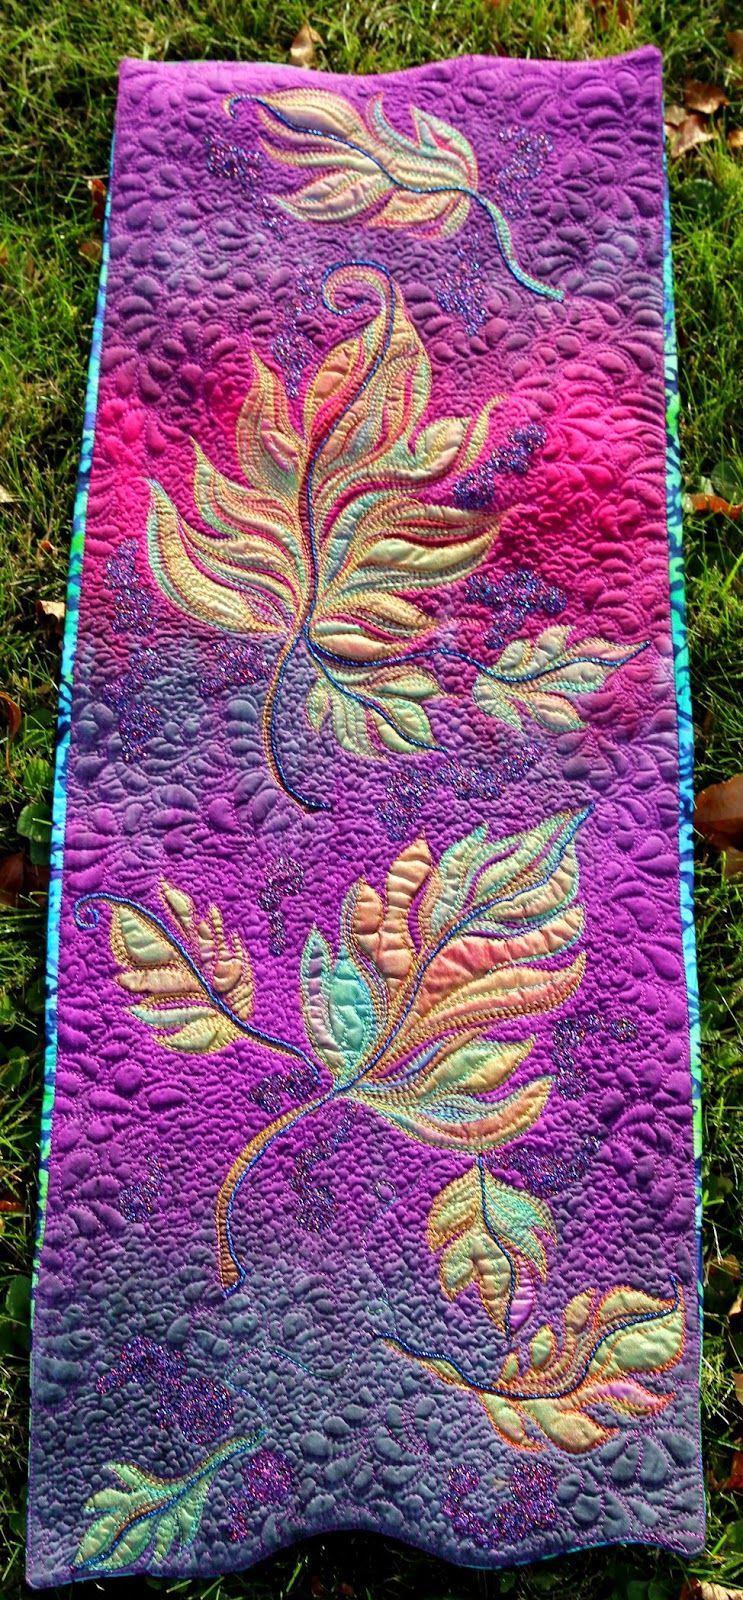 silk painted quilt - Google Search